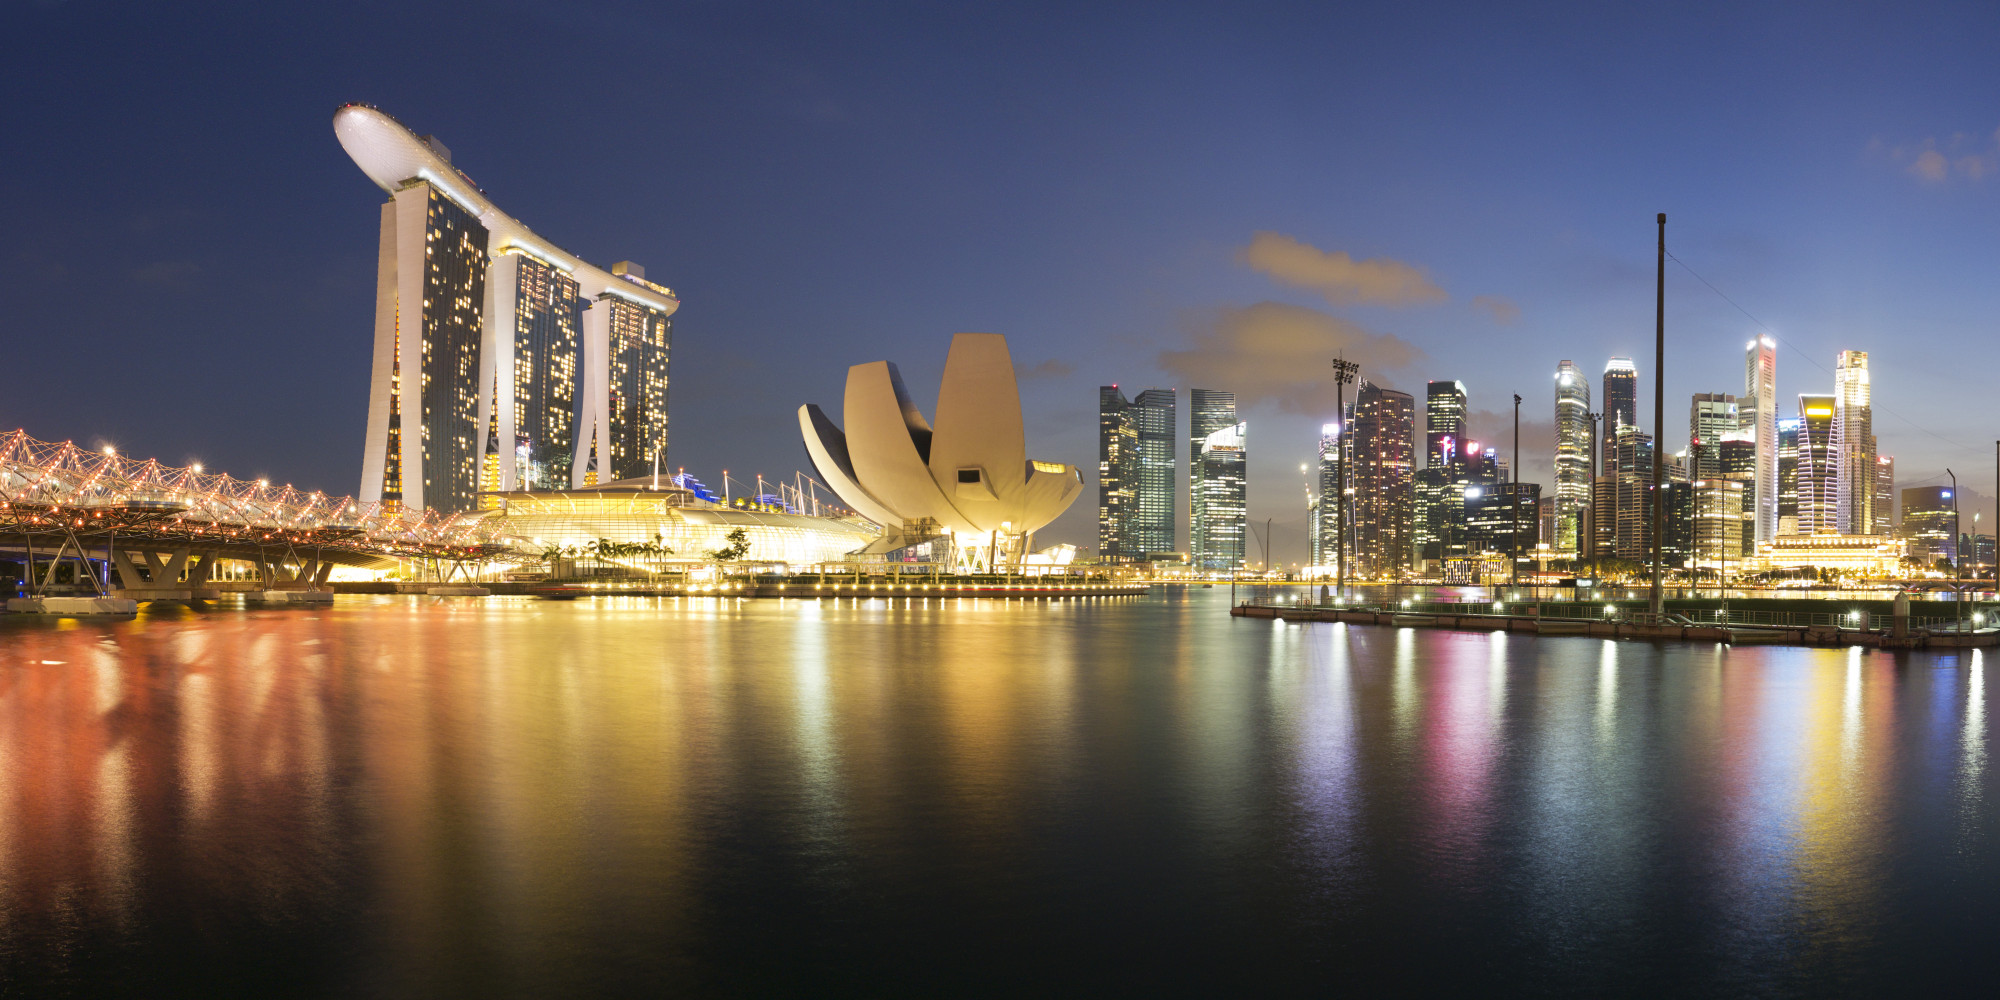 Greece Wallpaper Hd Singapore Named Best Value For Money City For Foreign